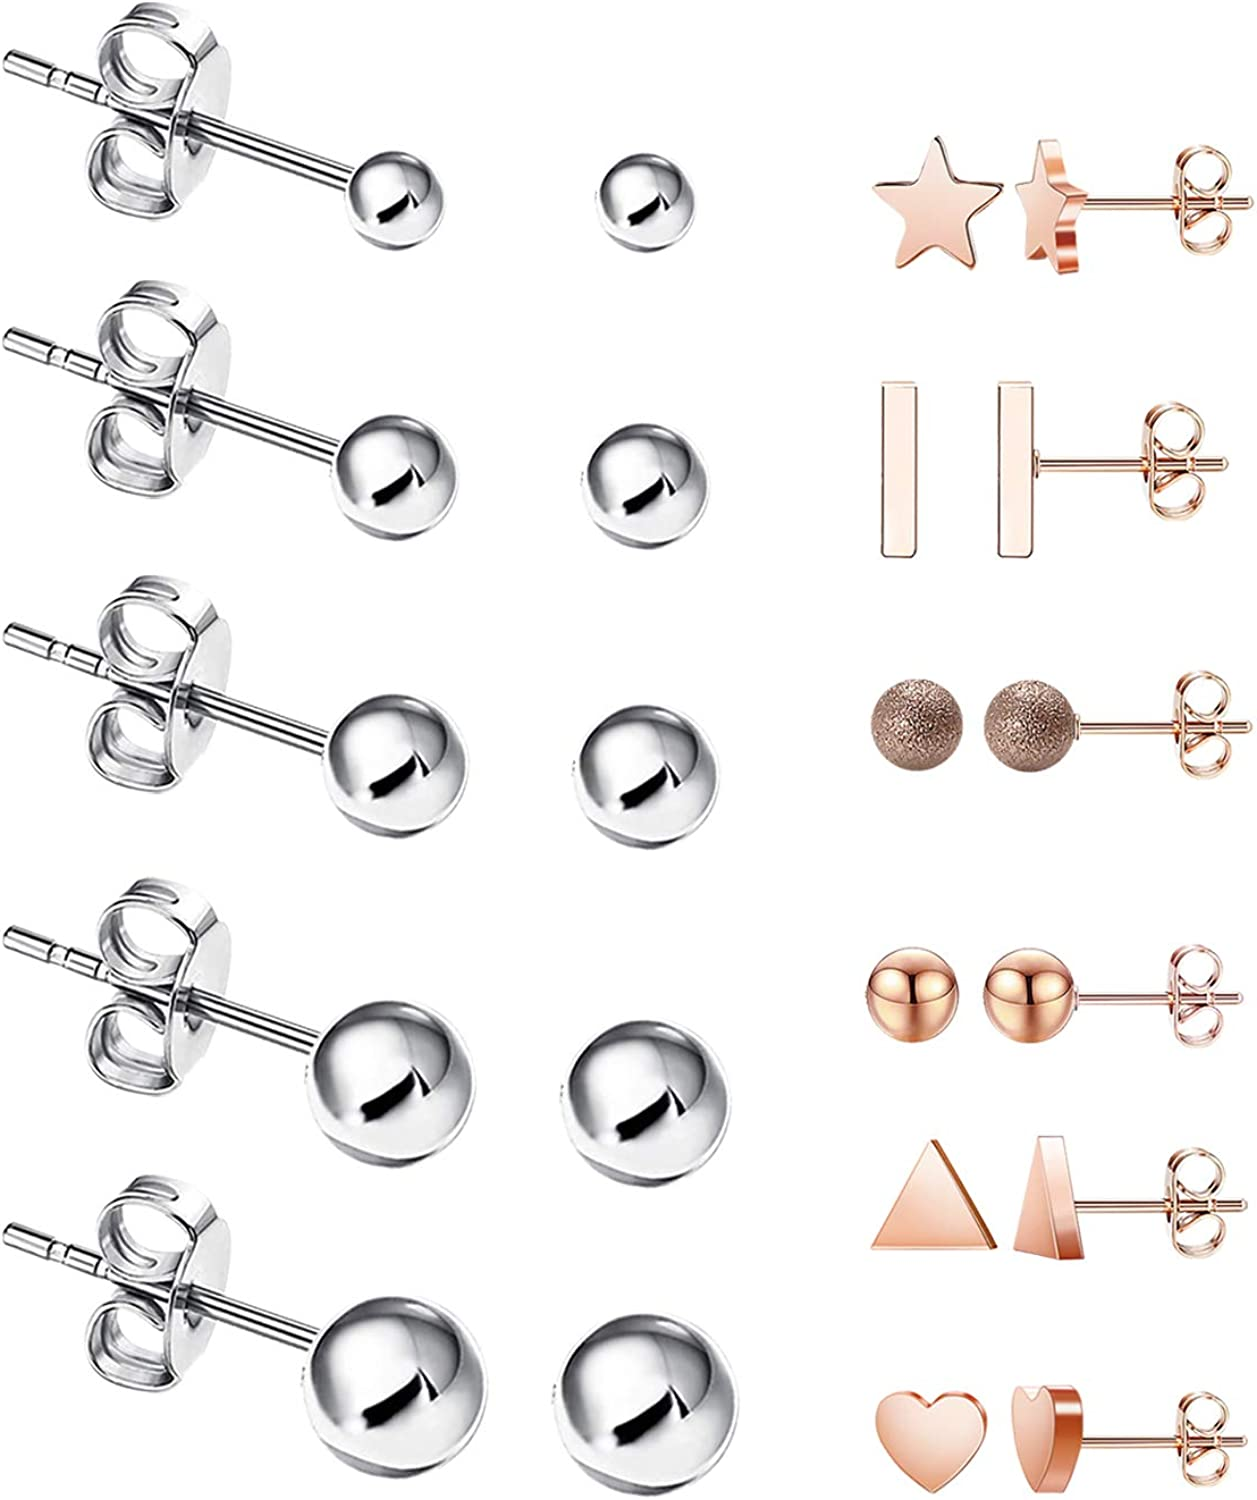 11 Limited price Pairs Bar Stud Earrings Cubic Year-end gift Zirconia Set 31 Hypoallergenic